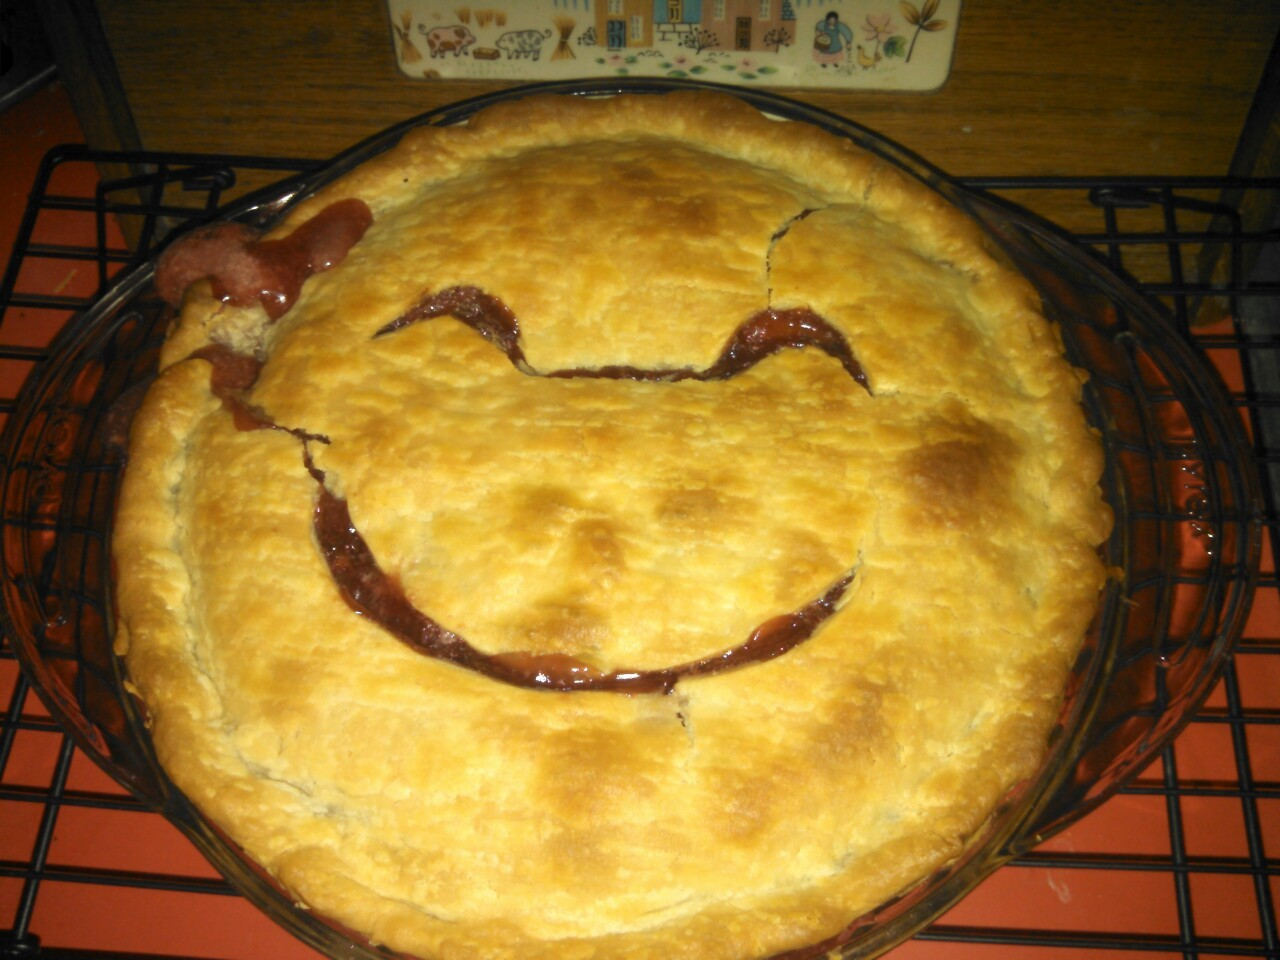 thunderdolt:  You guys! I made a pie for the first time. I was woefully short of the recipe-required strawberries, but I had already committed to the family. So, strawberry and (canned) peach pie. It's a thing, right? It looks like my pie is also in favor of gun control: :(